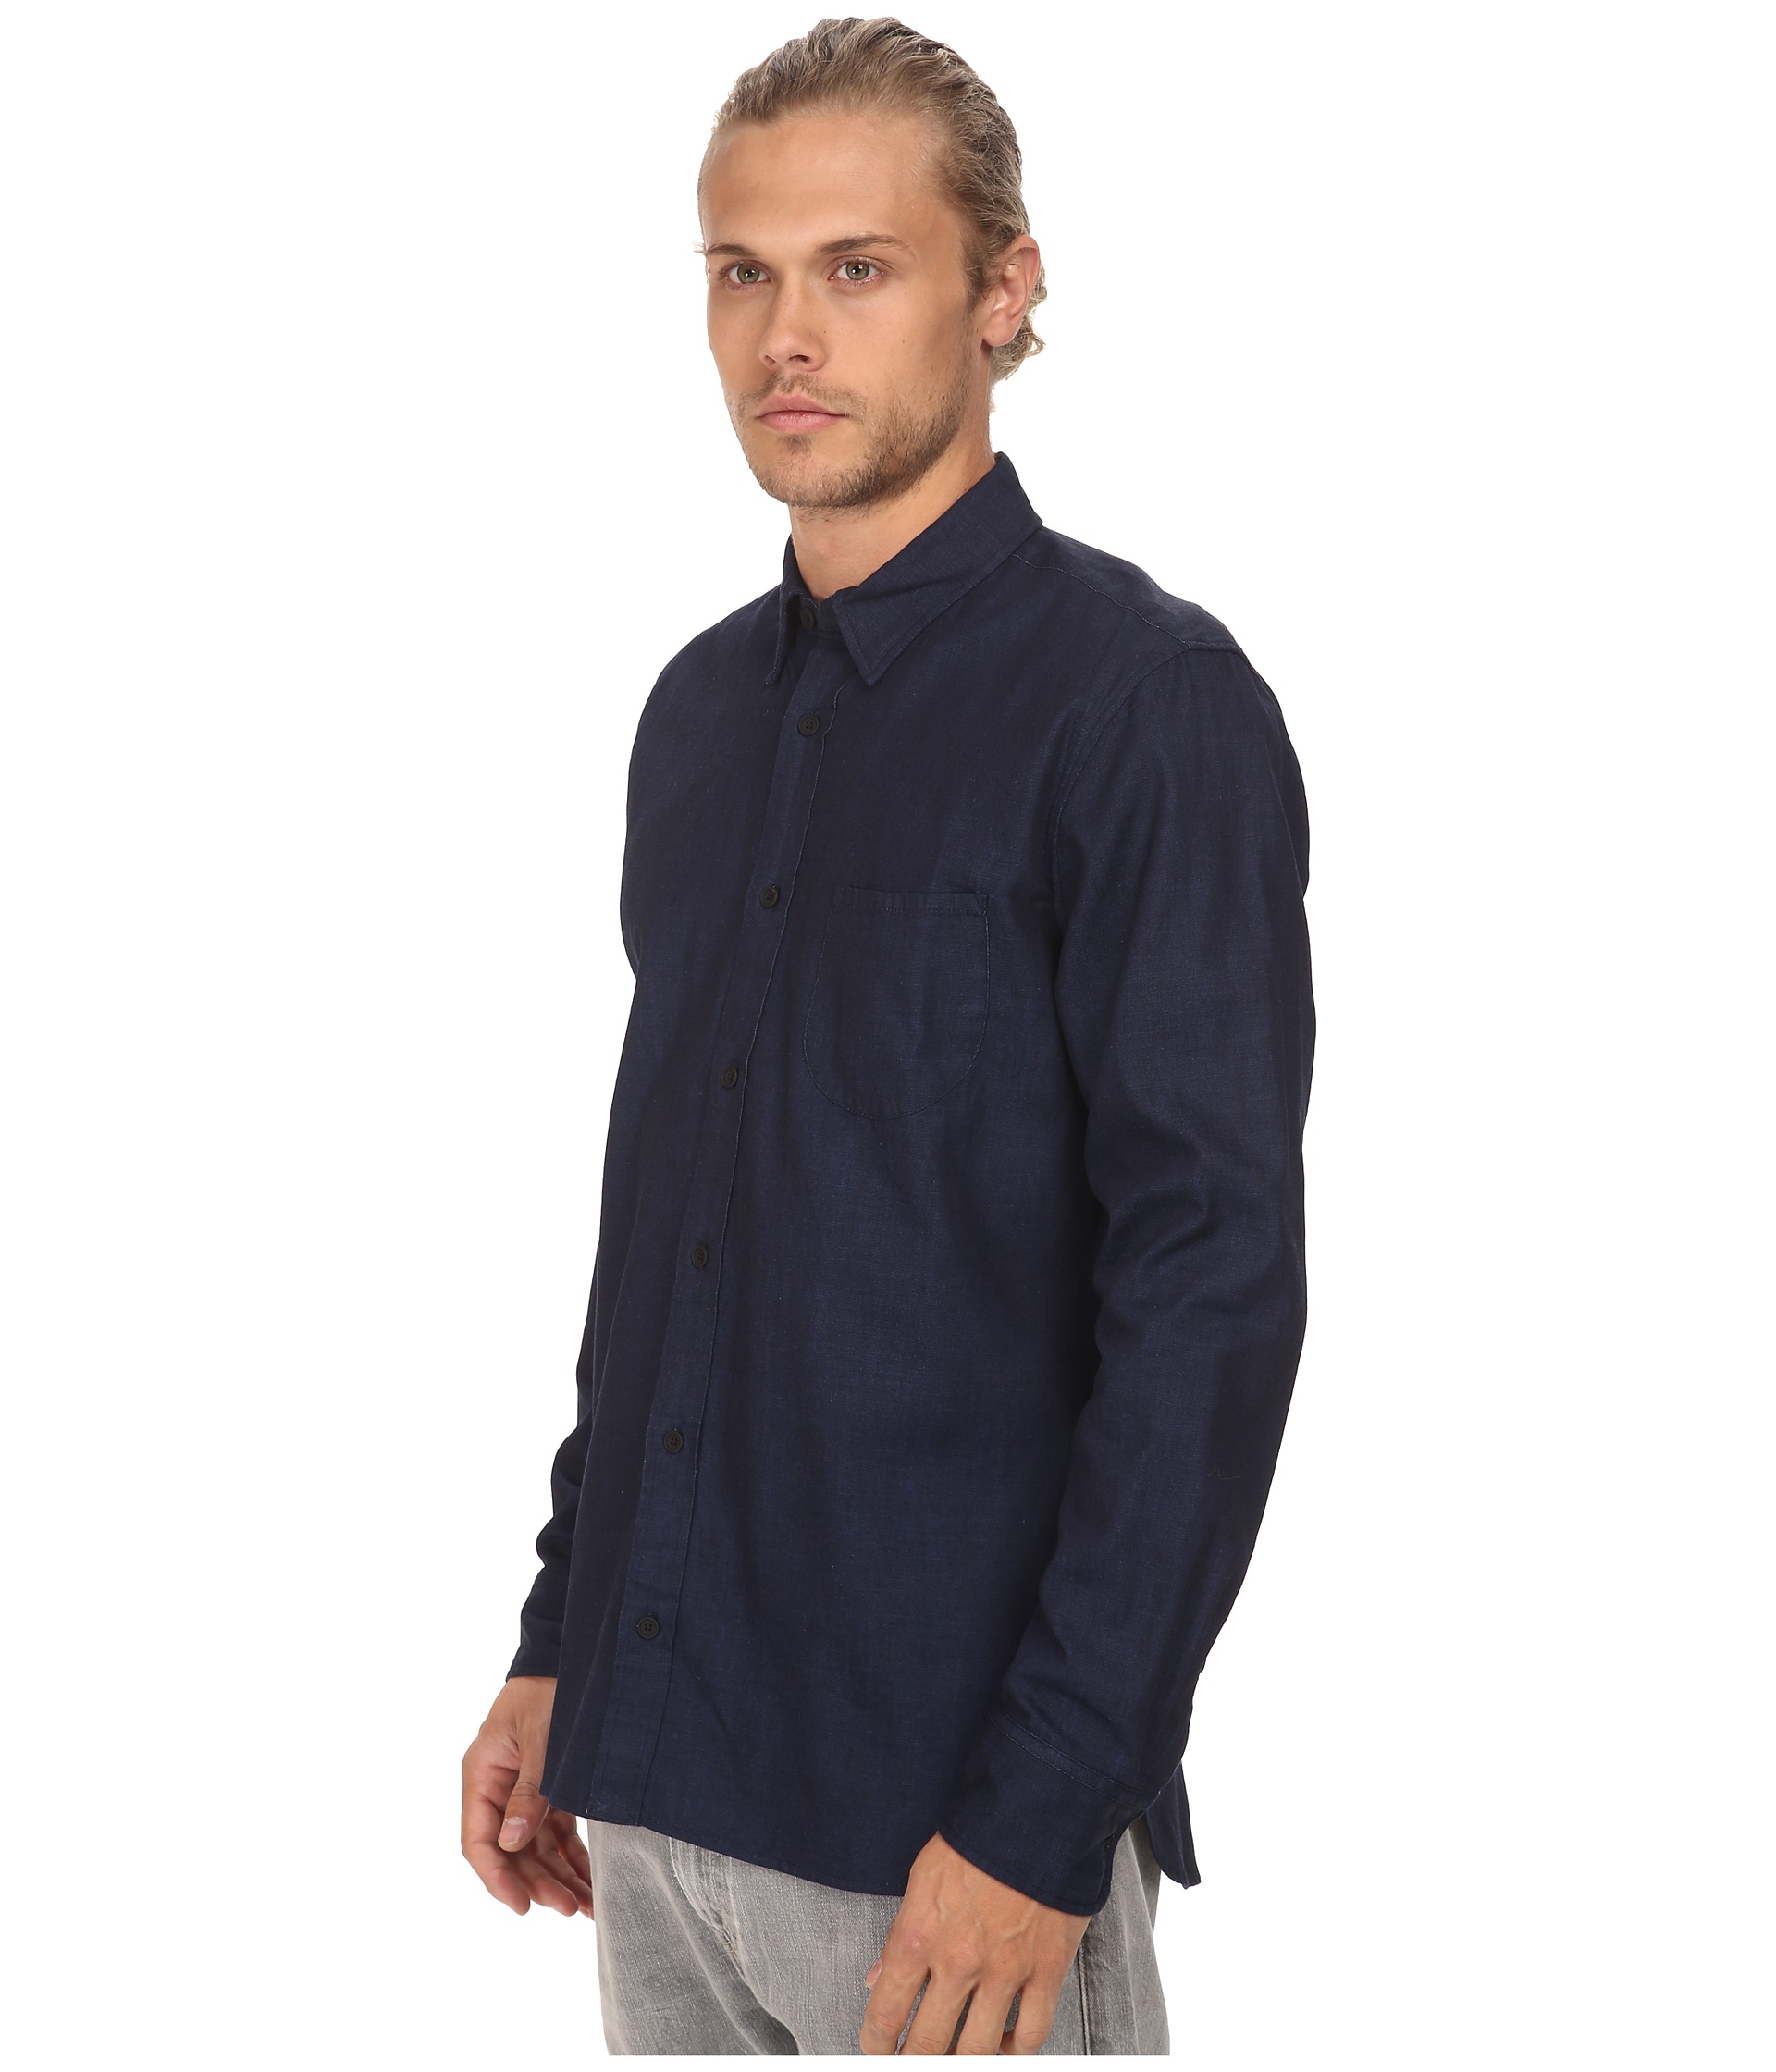 levi s made crafted one pocket shirt in denim rinse. Black Bedroom Furniture Sets. Home Design Ideas